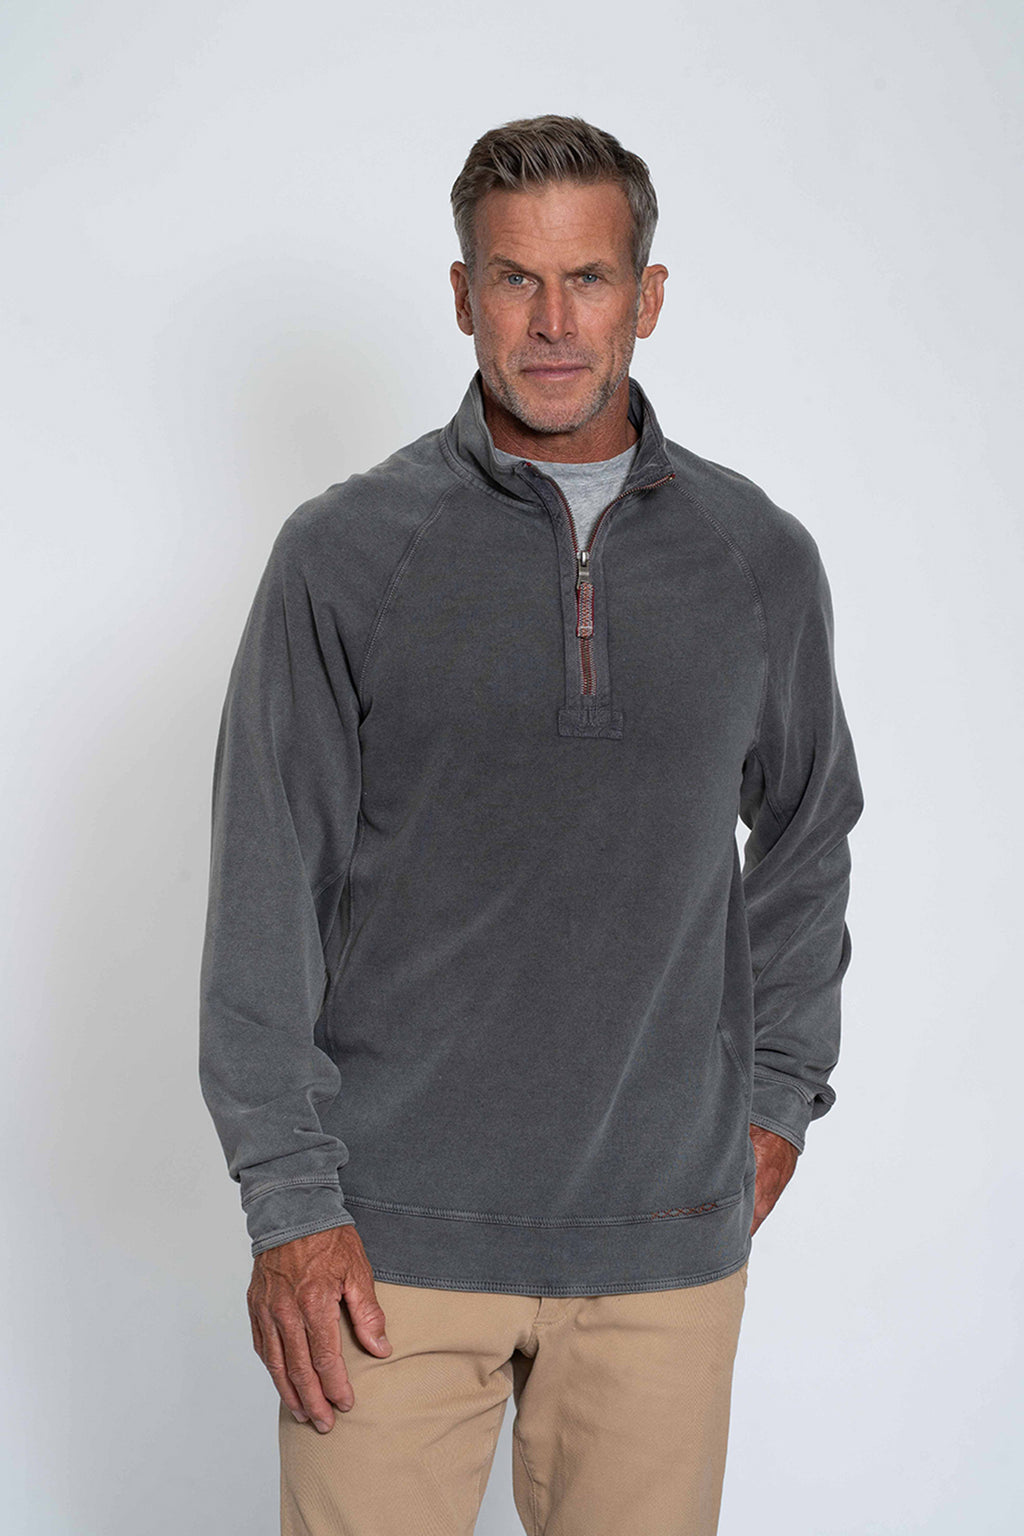 Cashmere Heather Zip Raglan Pullover